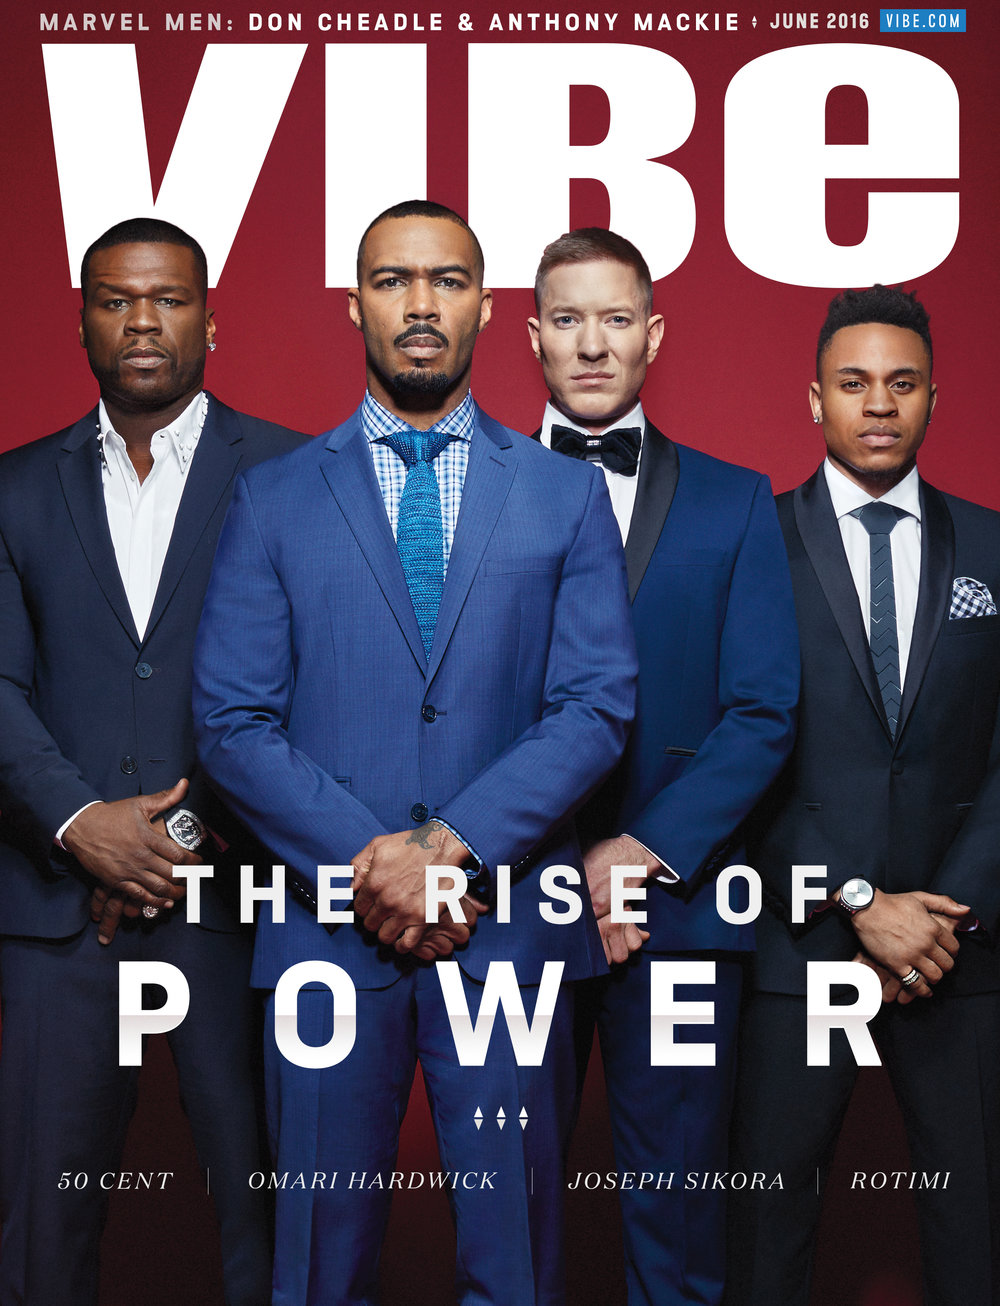 All Photos by  Katie Piper + Karl Ferguson Jr.  for the June 2016 Issue of  VIBE Magazine